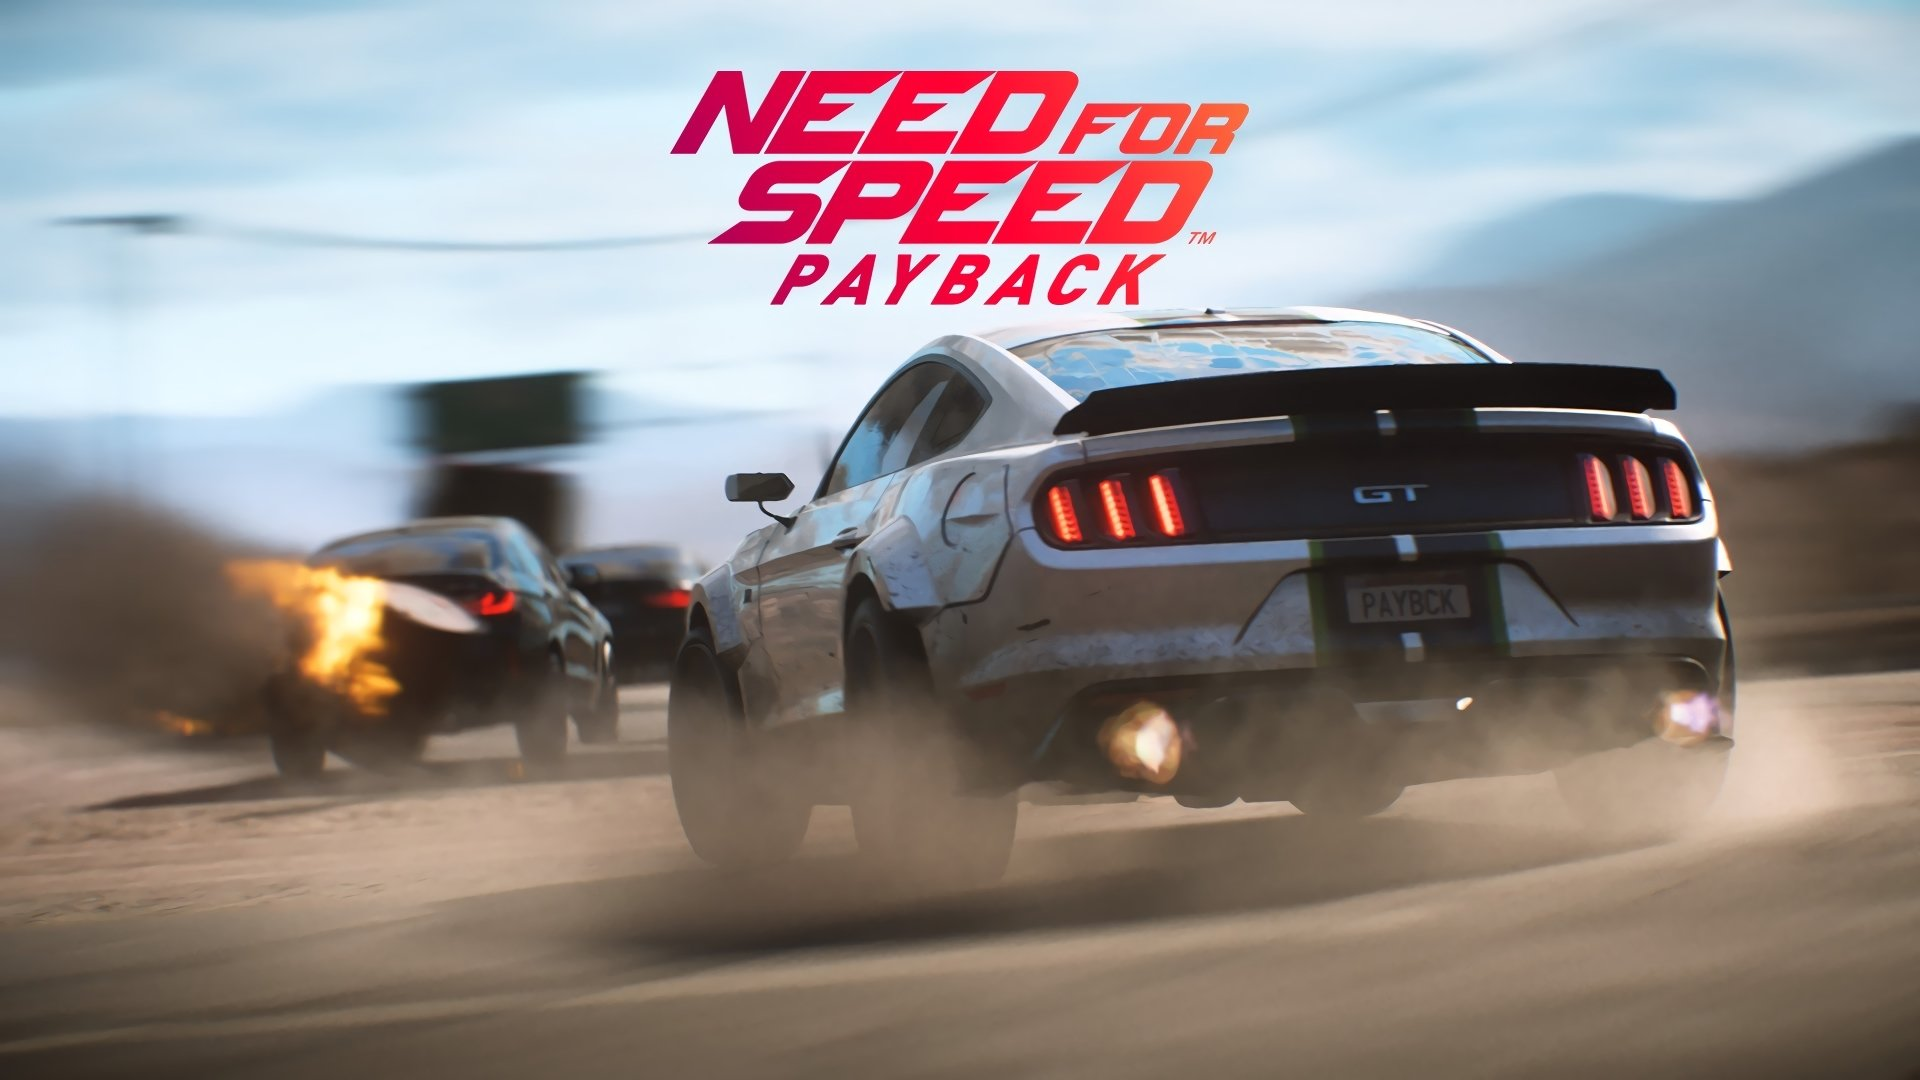 Need For Speed Payback Supercar HD Wallpaper